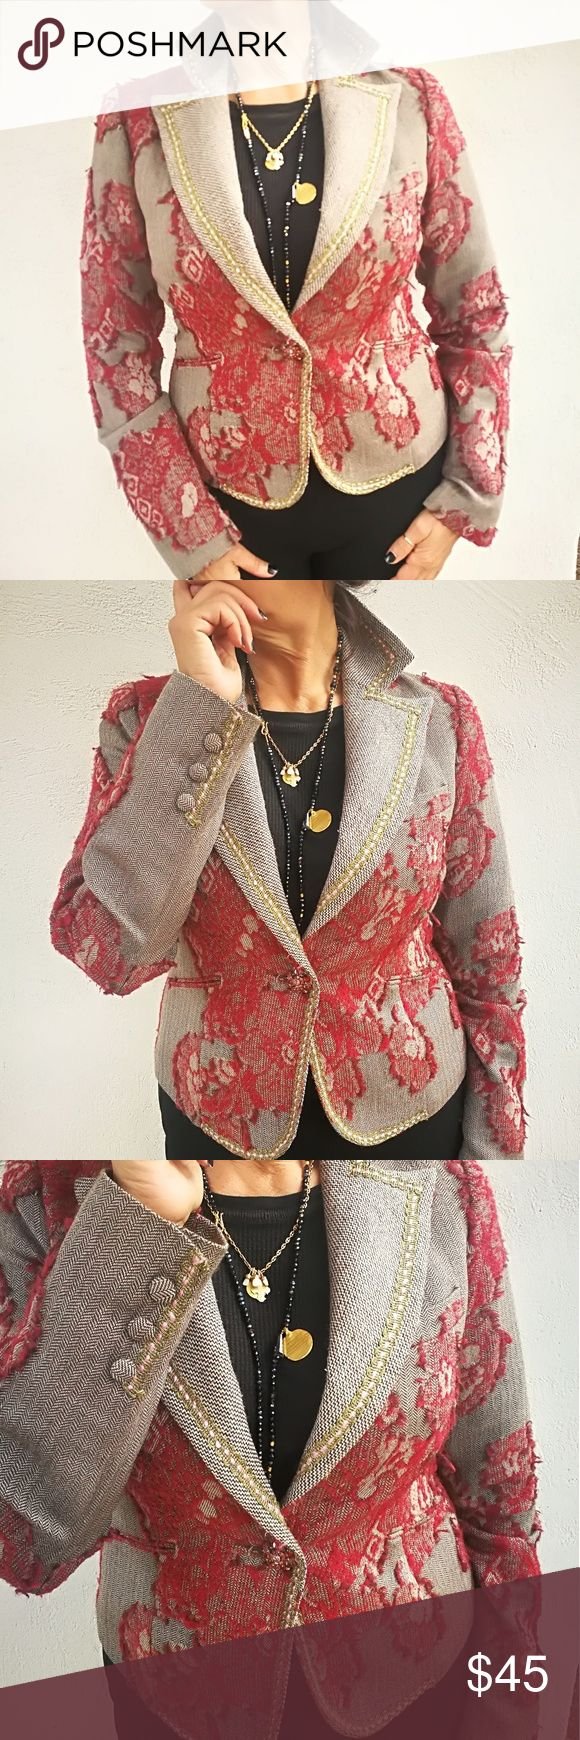 True meaning blazer Blazer with a vintage feeling, a lot of beatiful Details, 1 beautiful button, fully lined. True Meaning Jackets & Coats Blazers